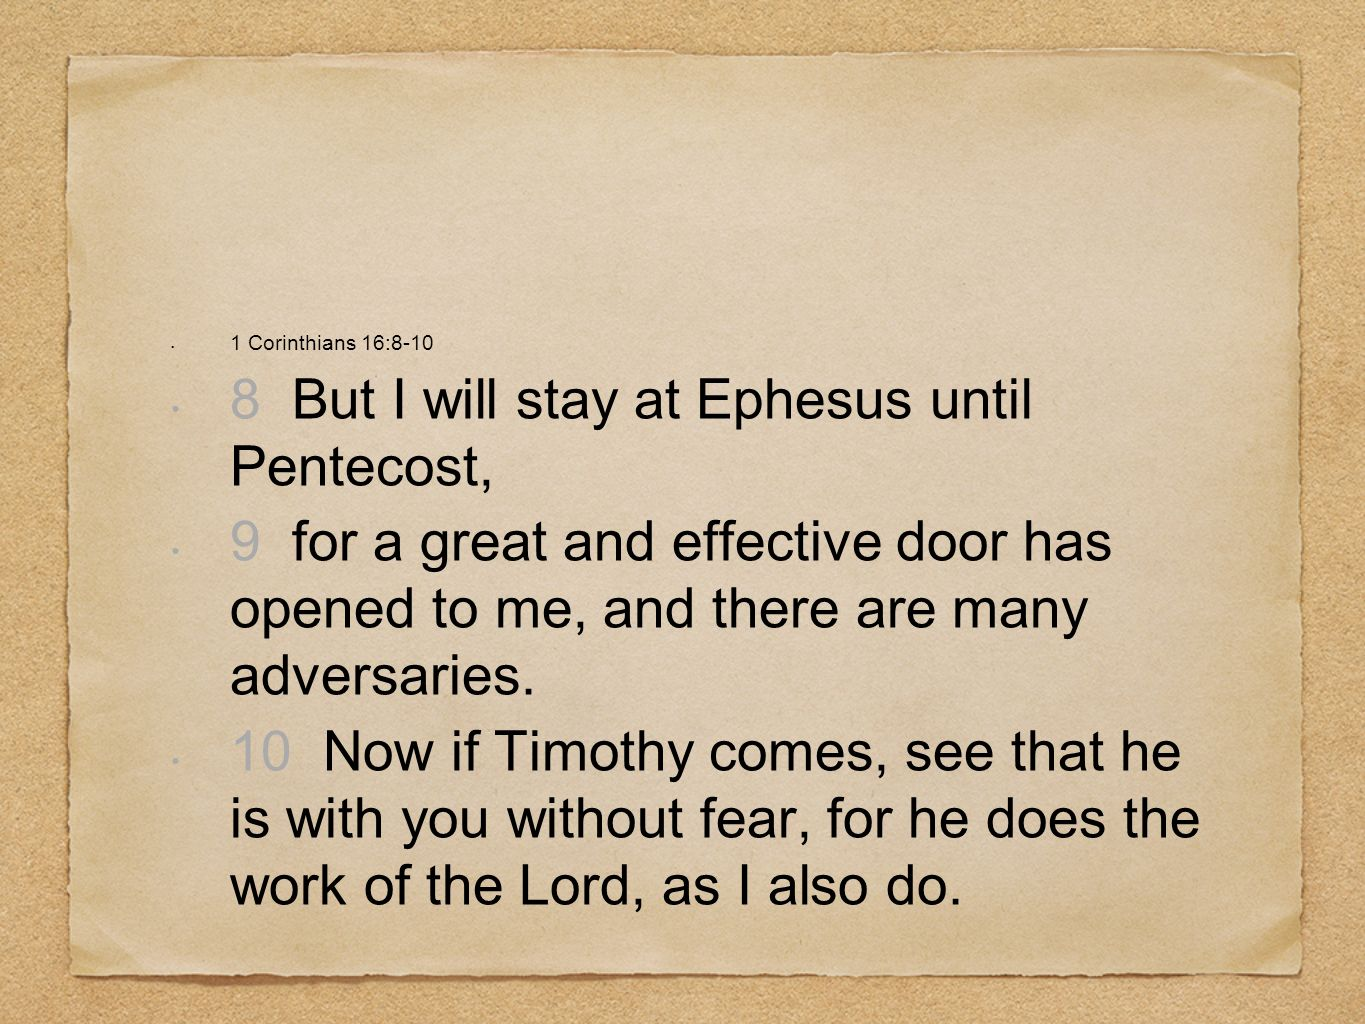 8 But I will stay at Ephesus until Pentecost,